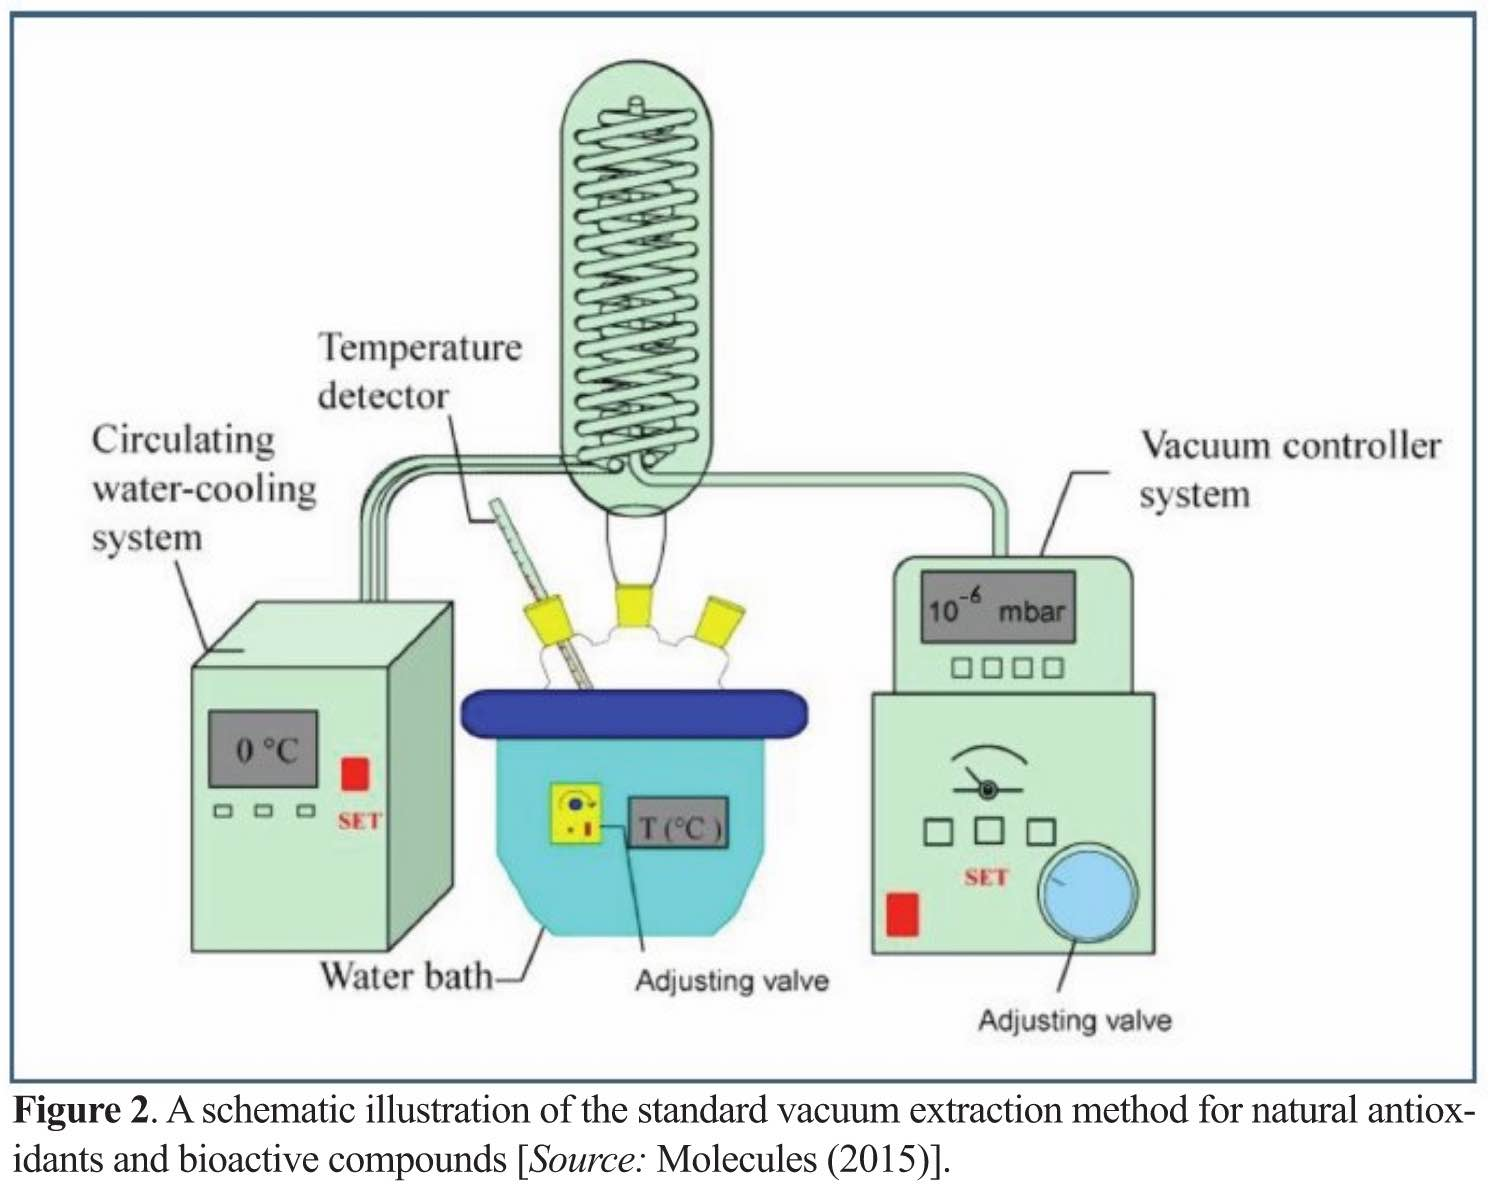 Industrial-Scale Vacuum-Powered Extraction Technologies for Bioactive/Antioxidant Products Boosting Food and Healthcare Sectors